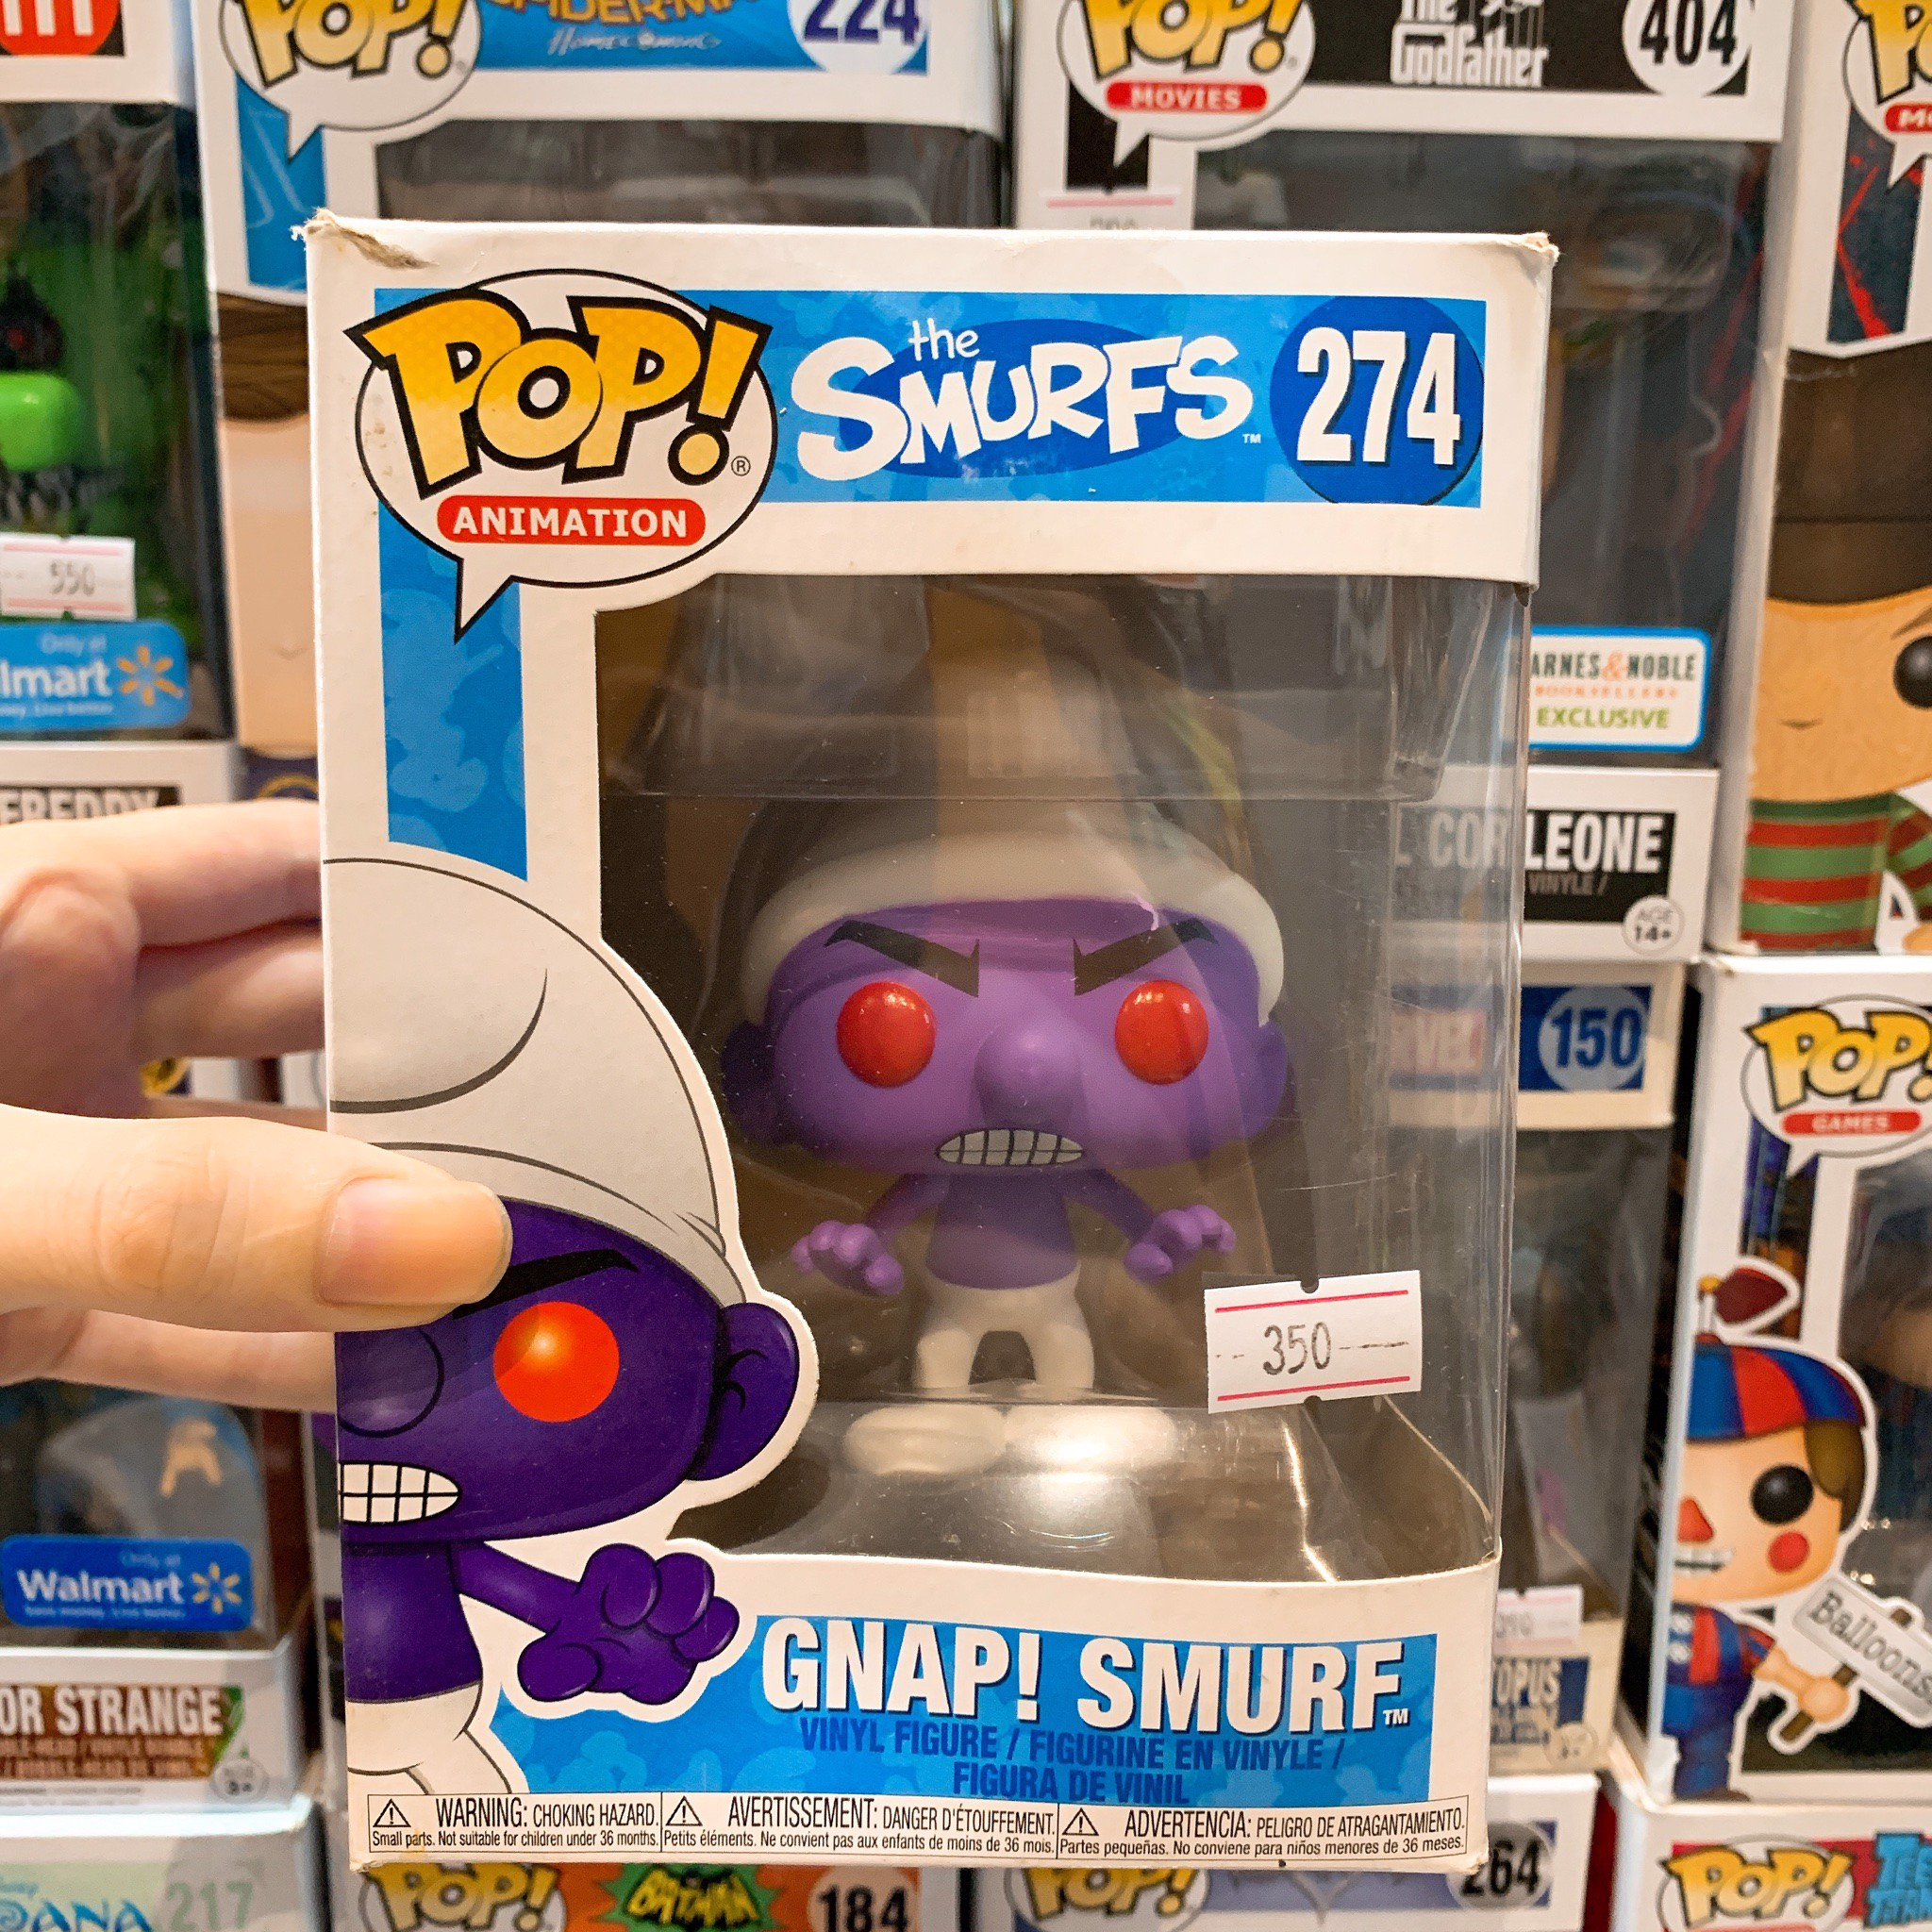 [CÓ SẴN] FUNKO POP The Smurfs 274 Gnap! Smurf